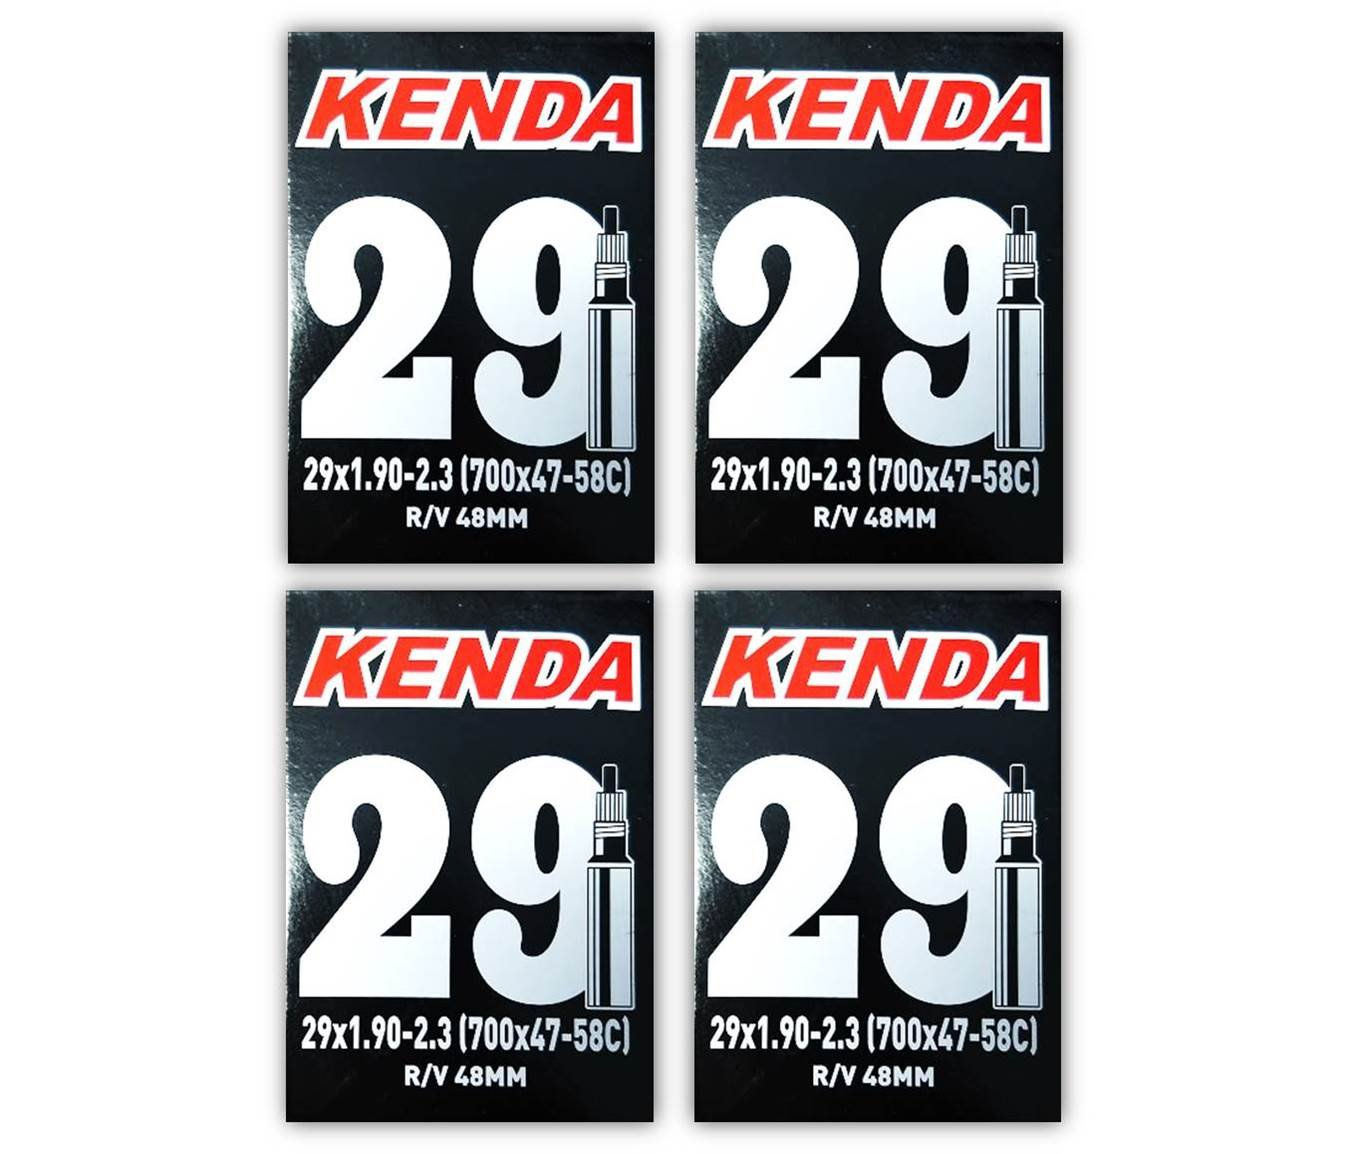 Kenda 29er Bicycle Tube 29x1.9/2.3'' (48mm Presta R/V) - FOUR PACK w Decal/Sticker